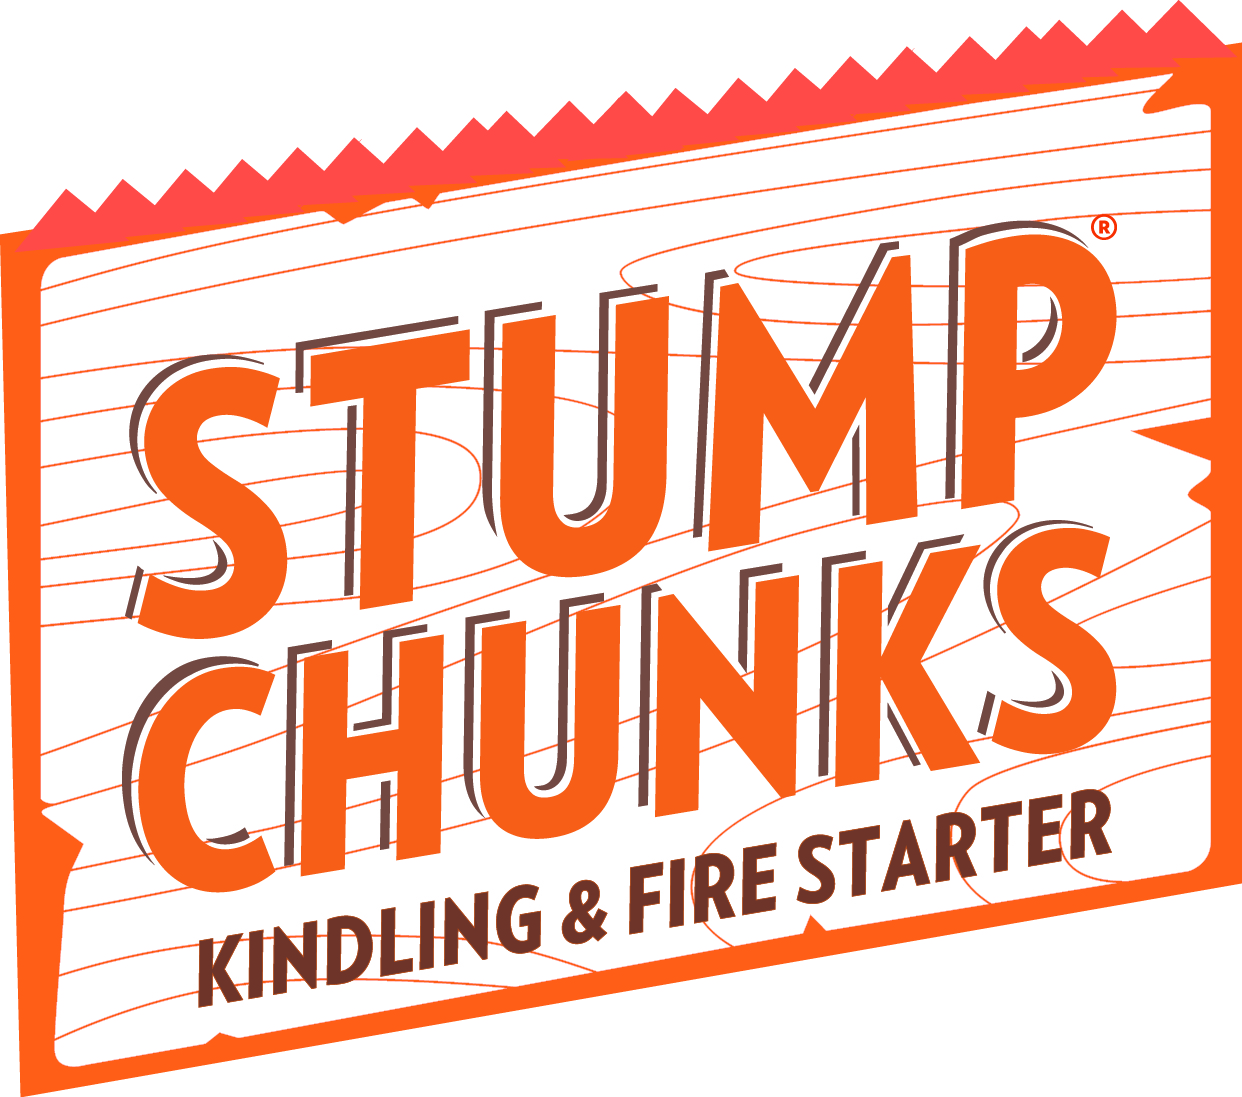 Stump Chunks LLC